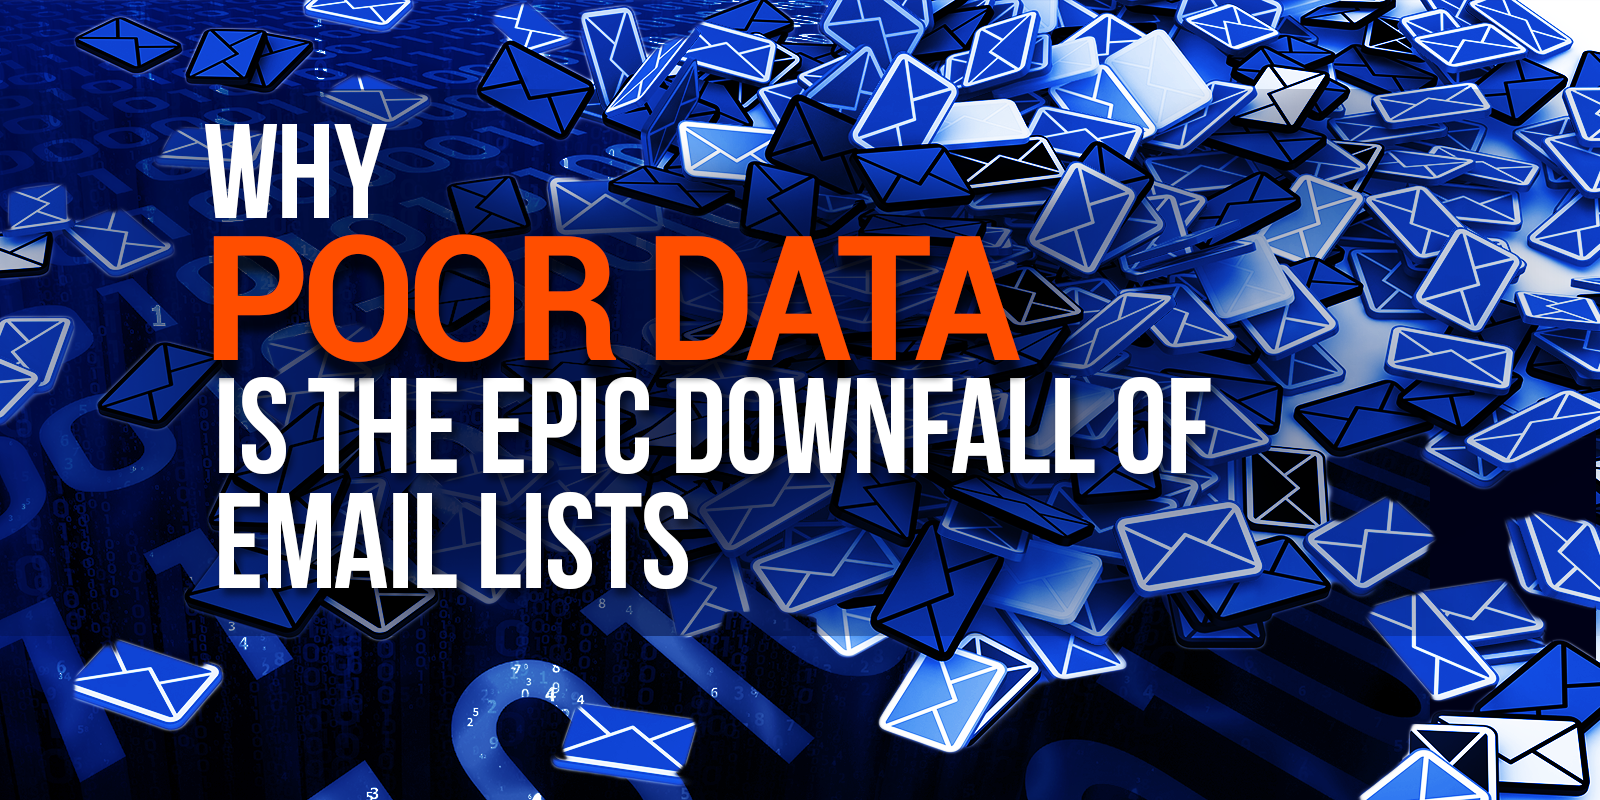 Why Poor Data is the Epic Downfall of Email Lists